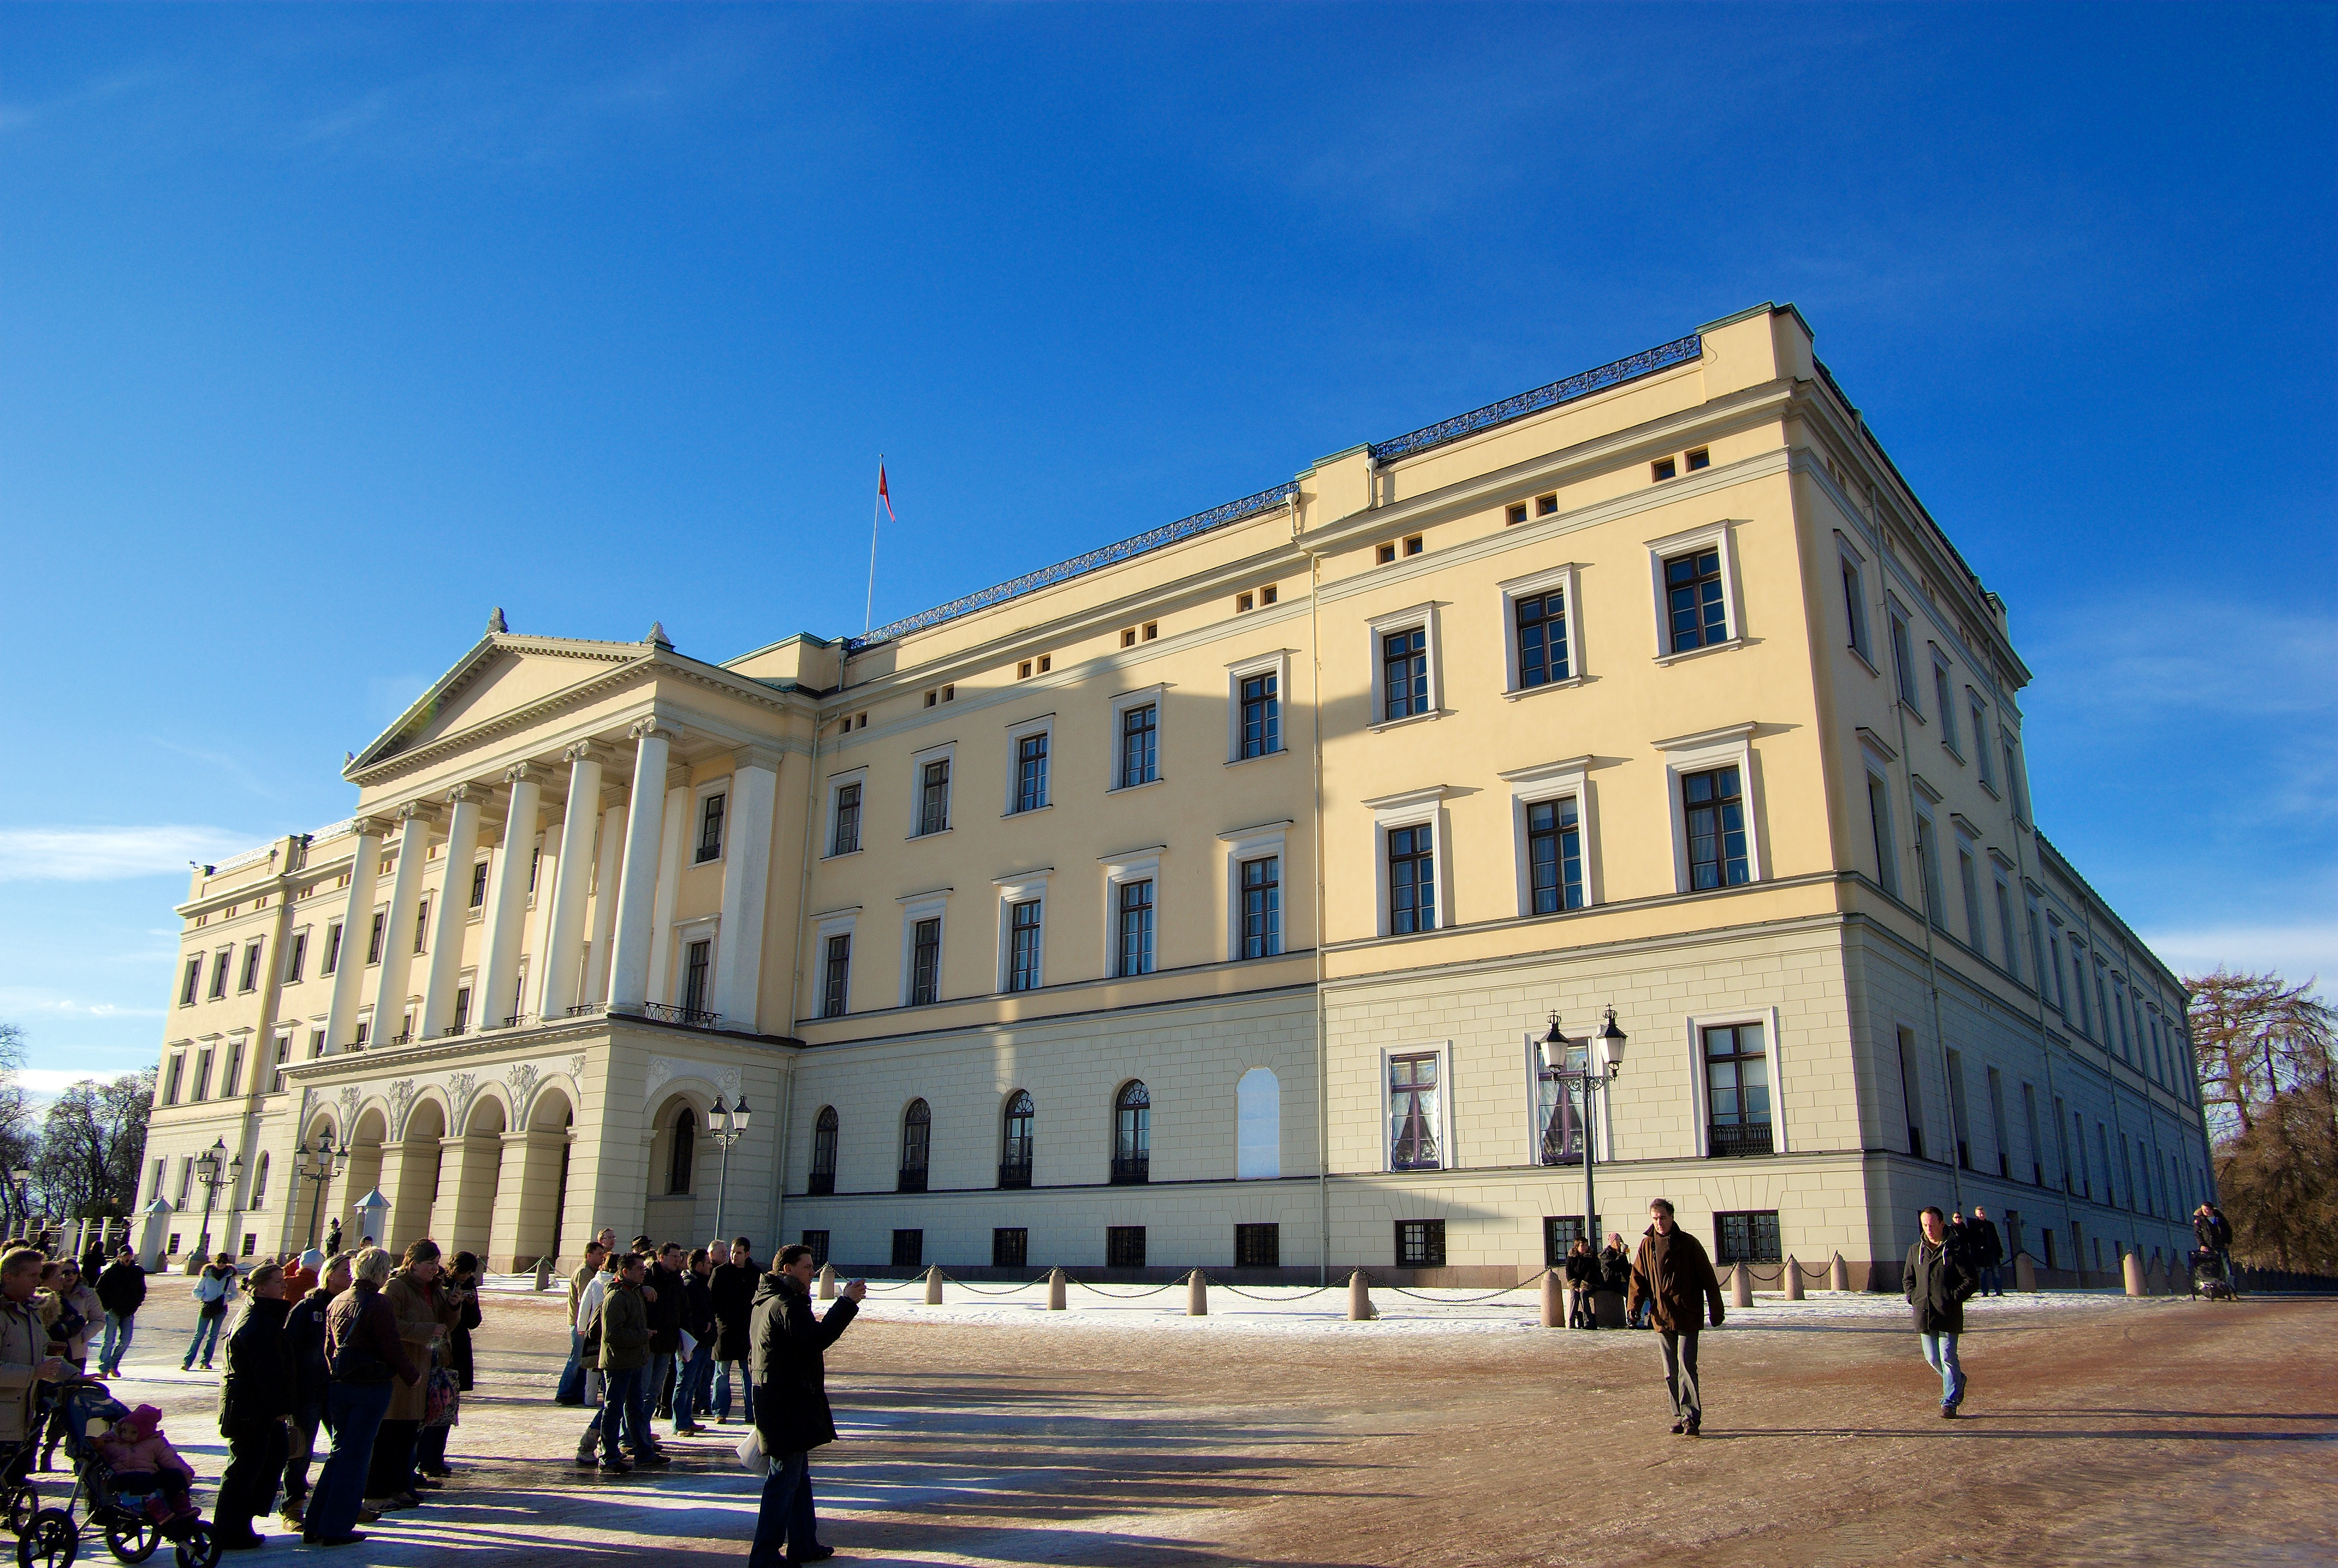 The Royal Palace of Oslo